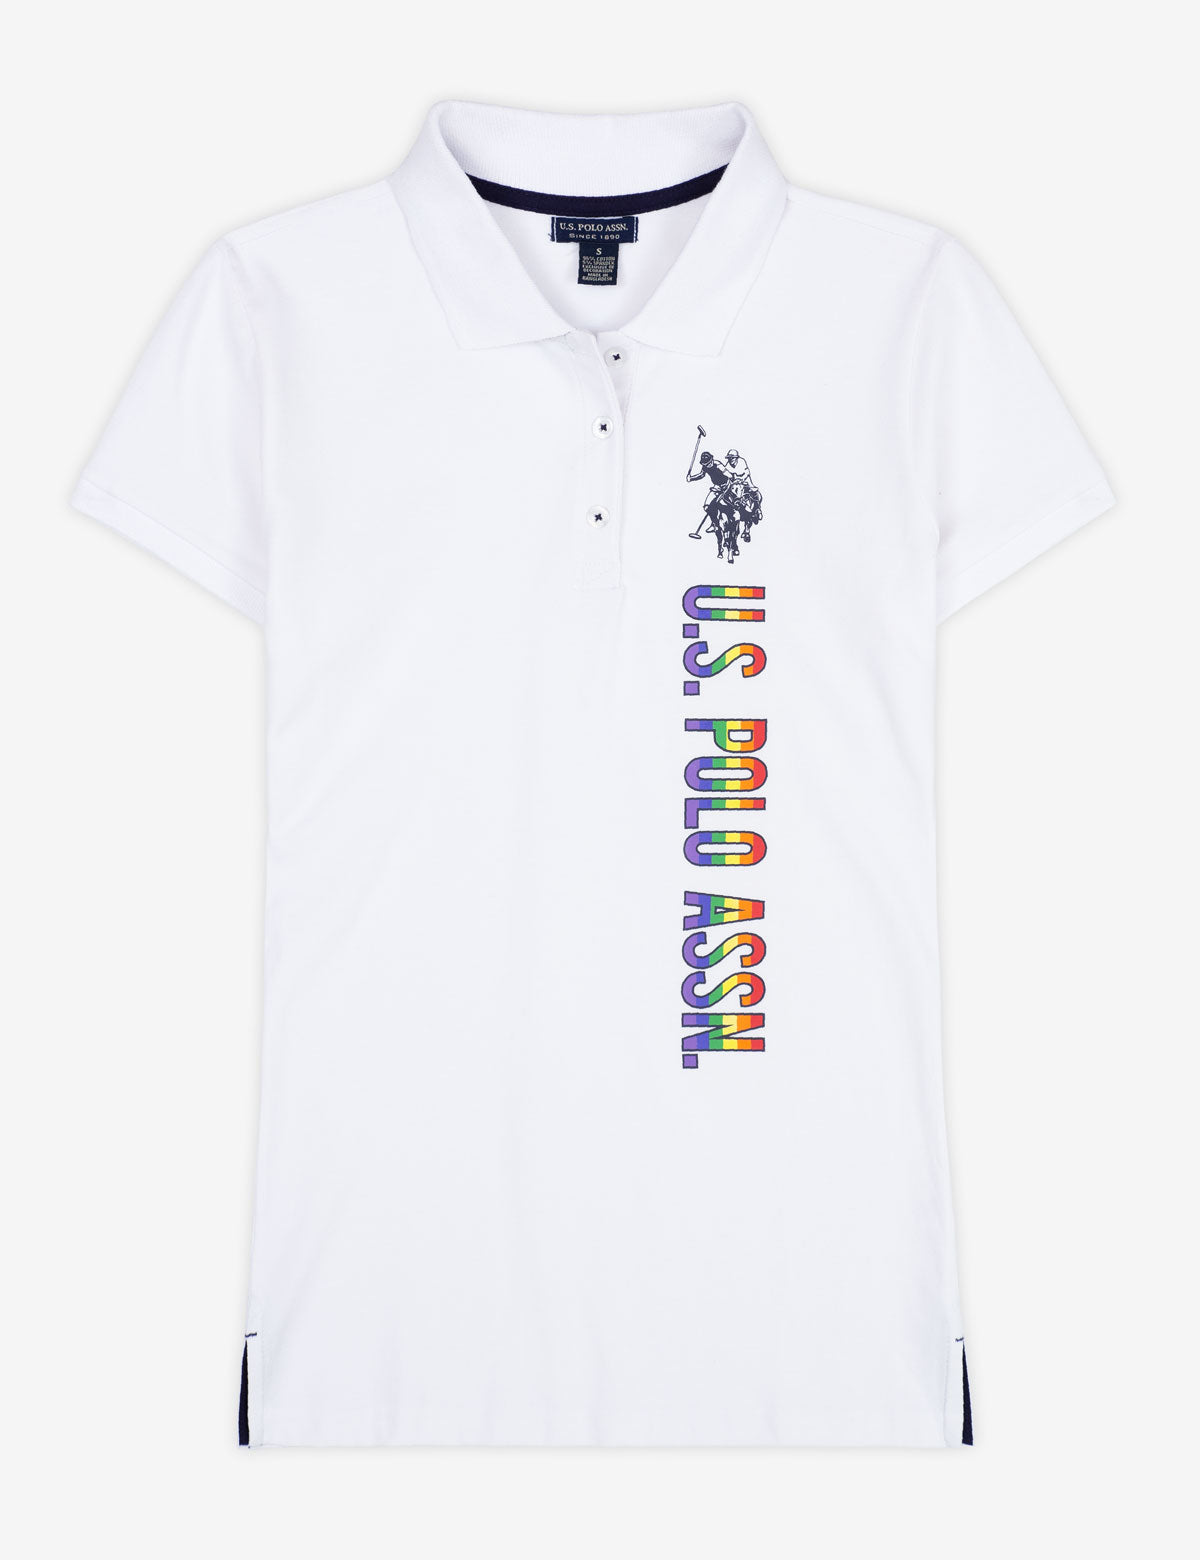 VERTICAL RAINBOW POLO SHIRT - U.S. Polo Assn.